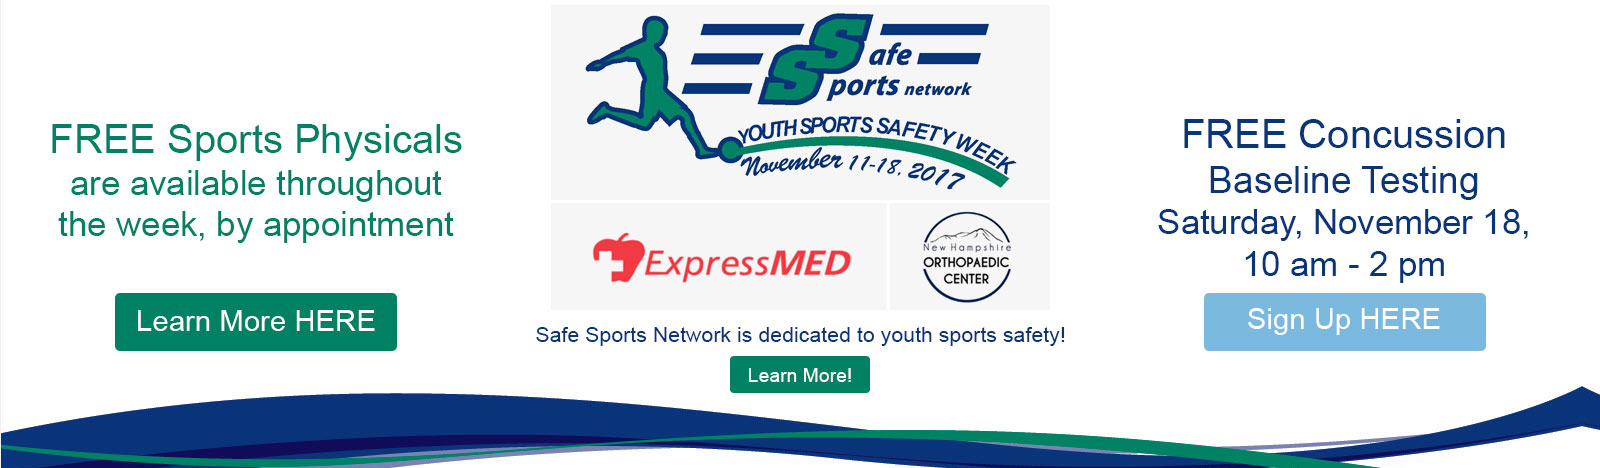 Safe Sports Network is dedicated to youth sports safety!